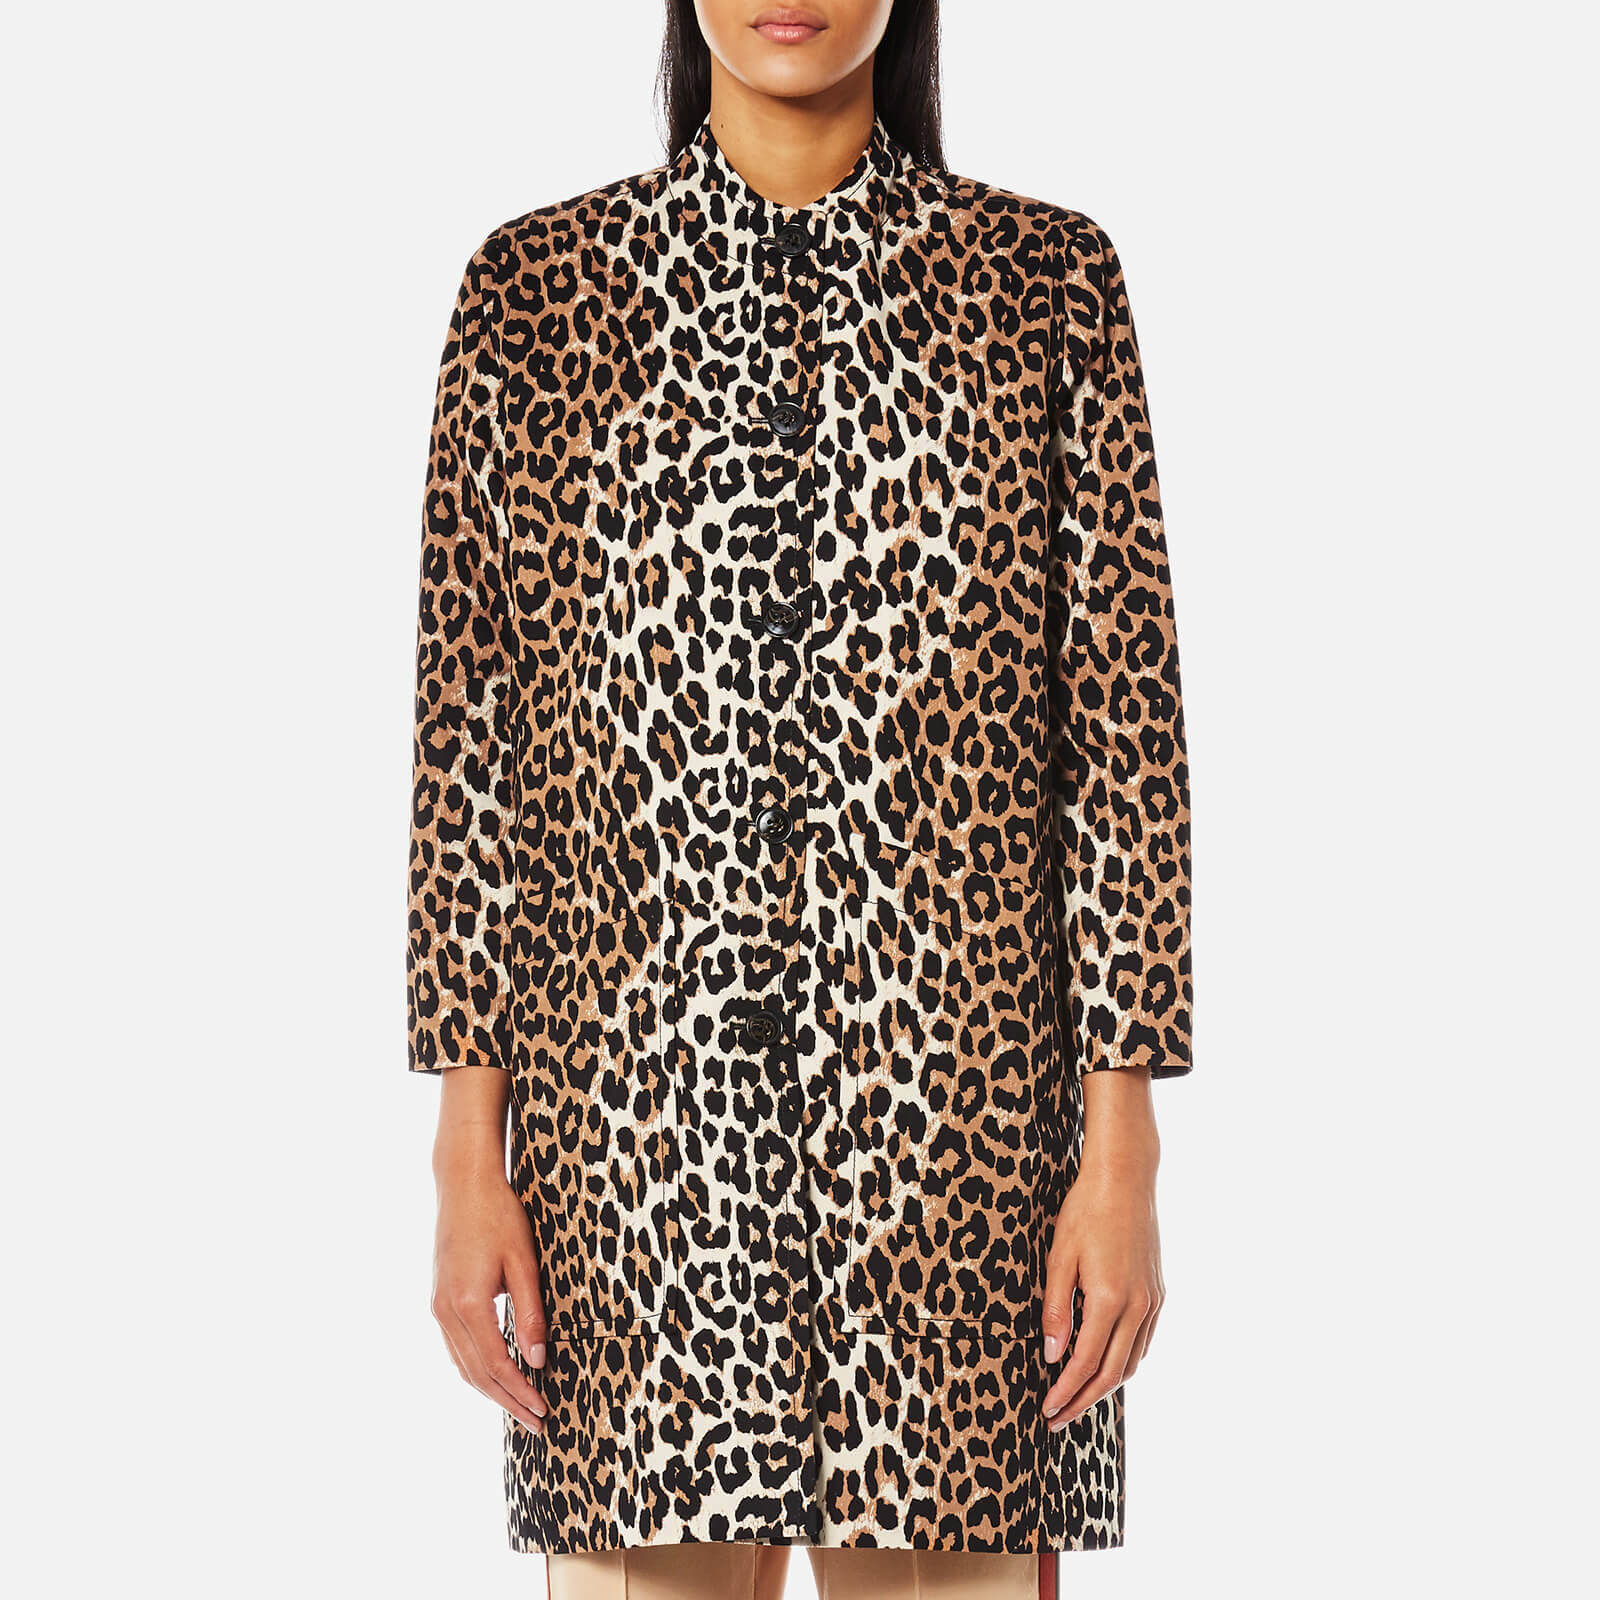 e2de1d5f440 Ganni Women's Fabre Cotton Jacket - Leopard - Free UK Delivery over £50